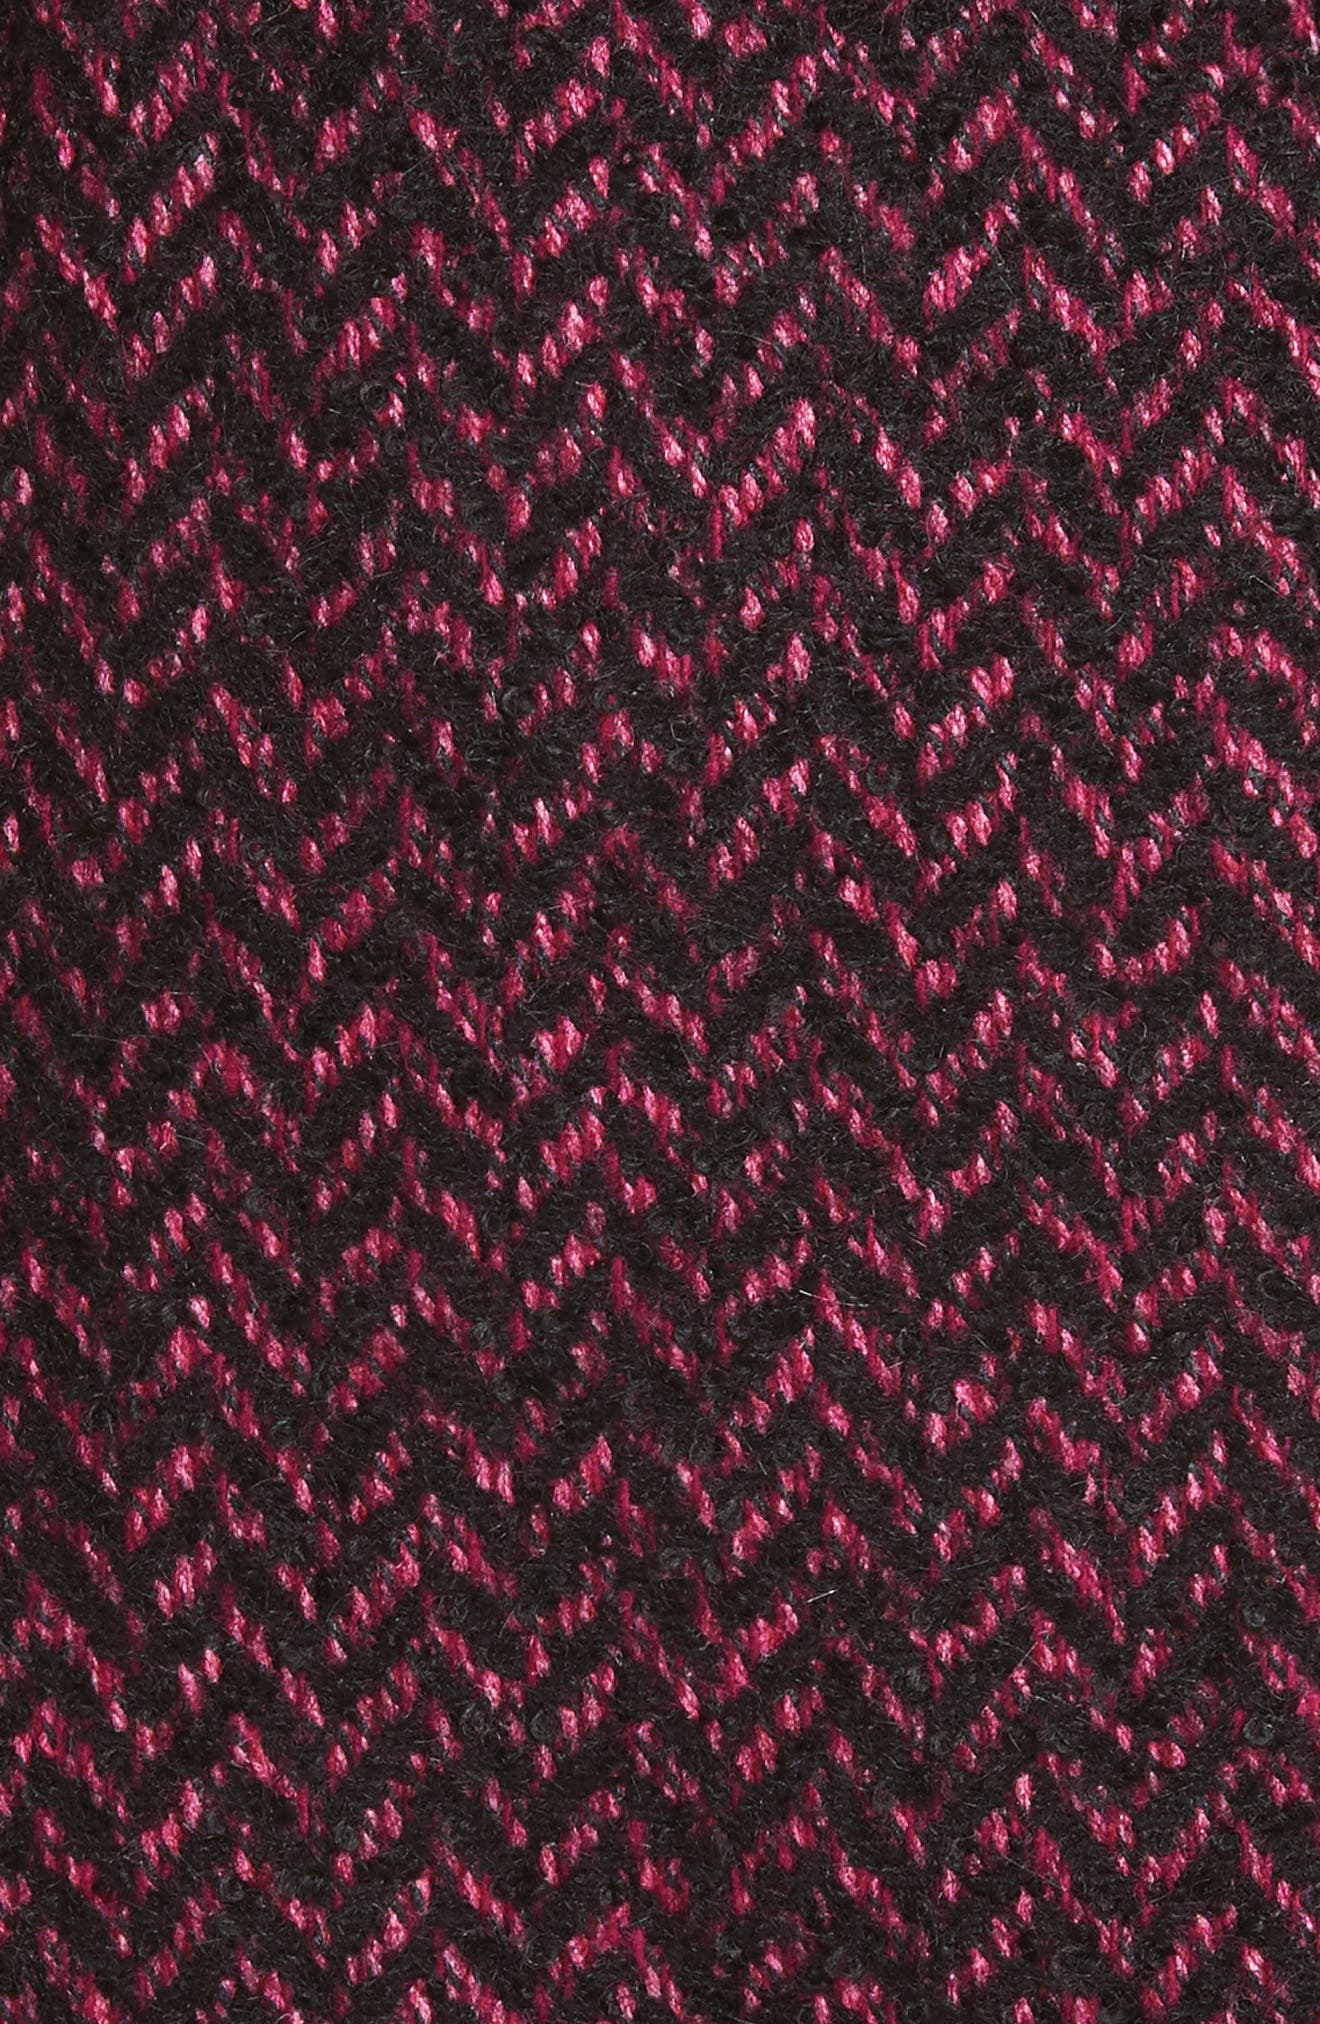 Herringbone Wool Blend A-Line Skirt,                             Alternate thumbnail 5, color,                             500